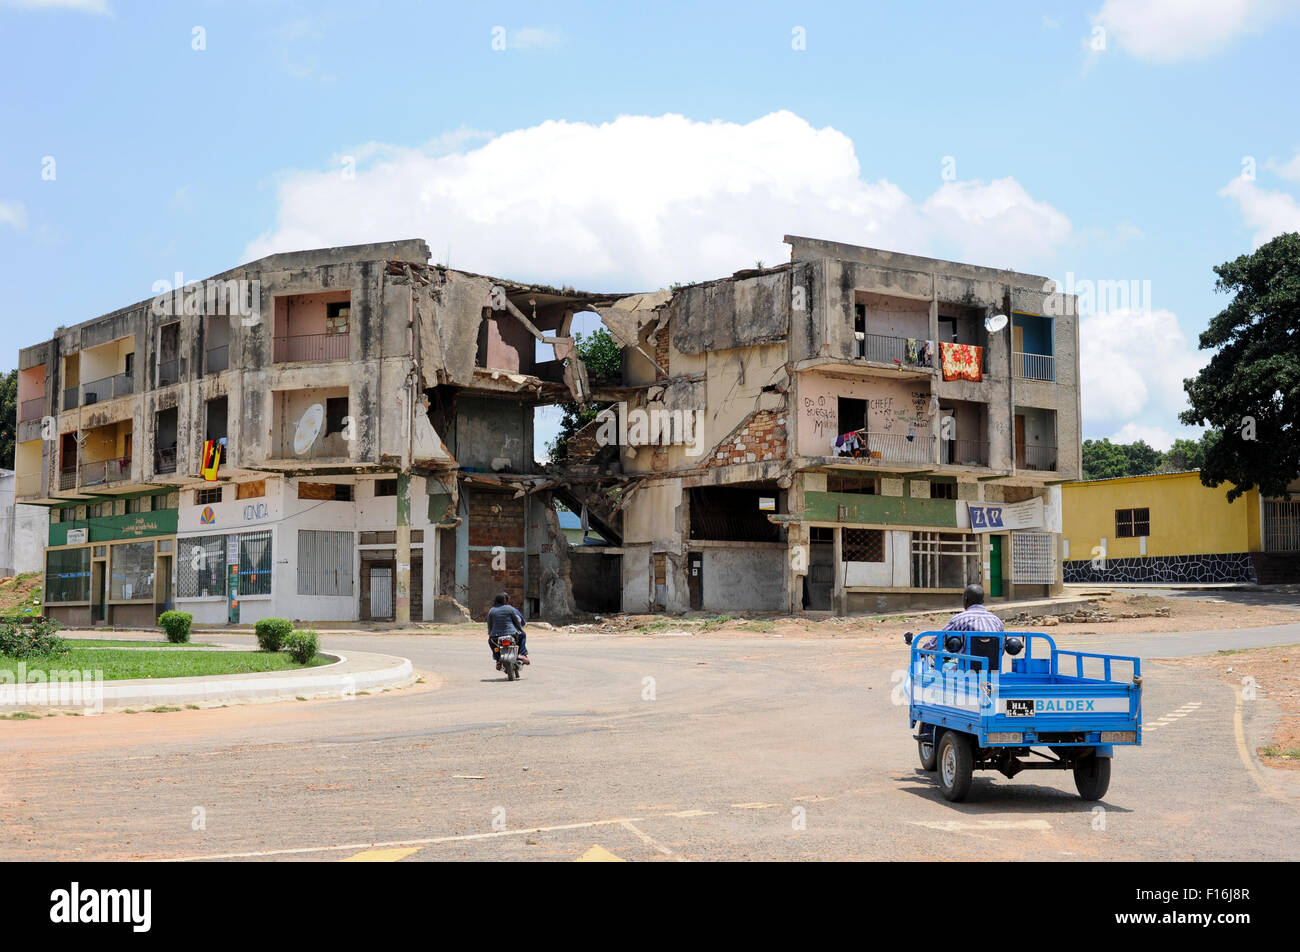 Africa ANGOLA Quibala, destroyed buildings from civil war between MPLA and UNITA - Stock Image